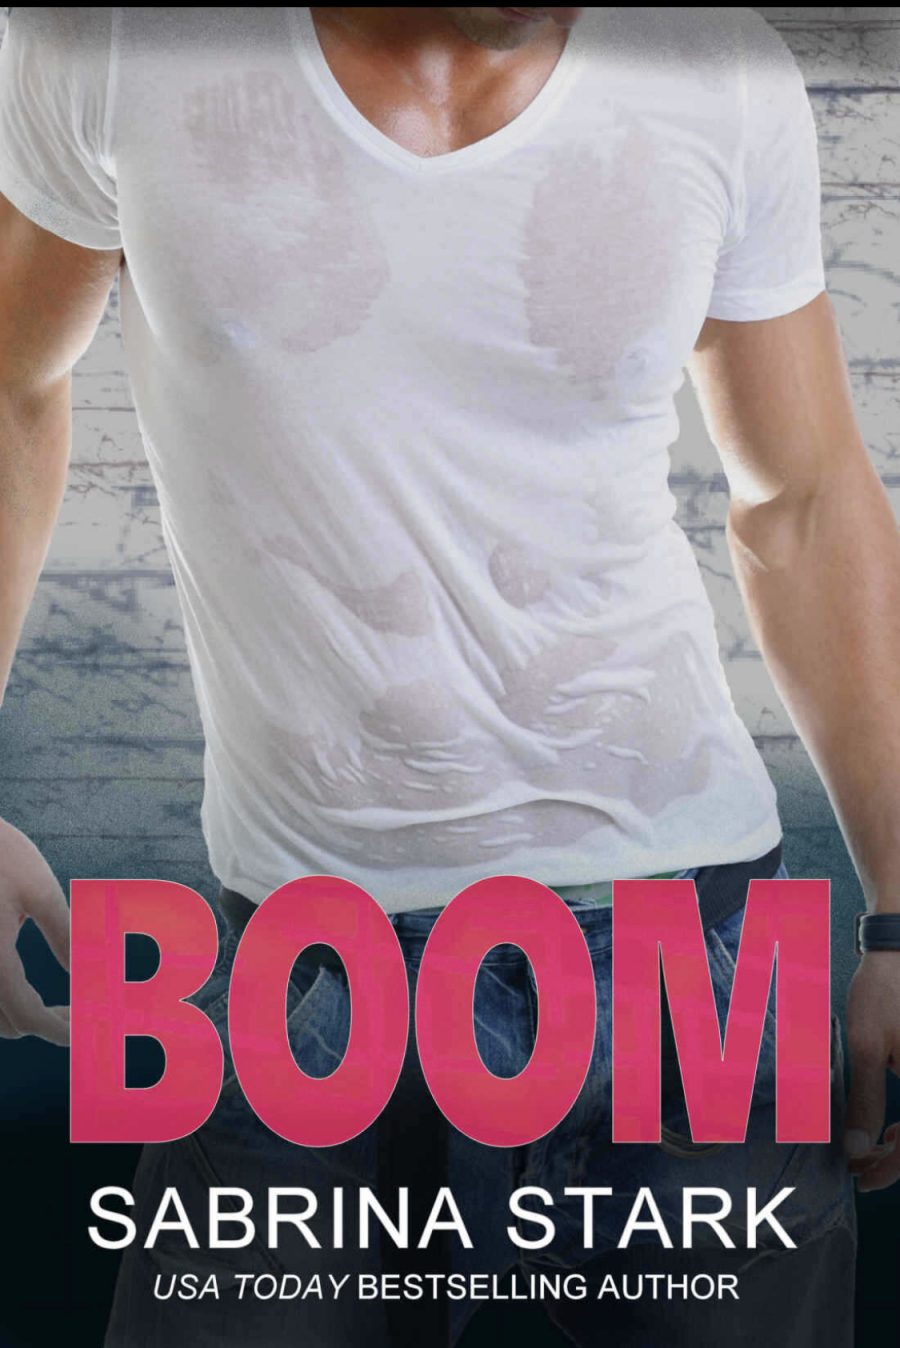 Boom (An Enemies to Lovers Romance) by Sabrina Stark - A Book Review #BookReview #Romance #ContemporaryRomance #NewRelease #4Stars #EnemiesToLovers #HEA #KindleUnlimited #KU